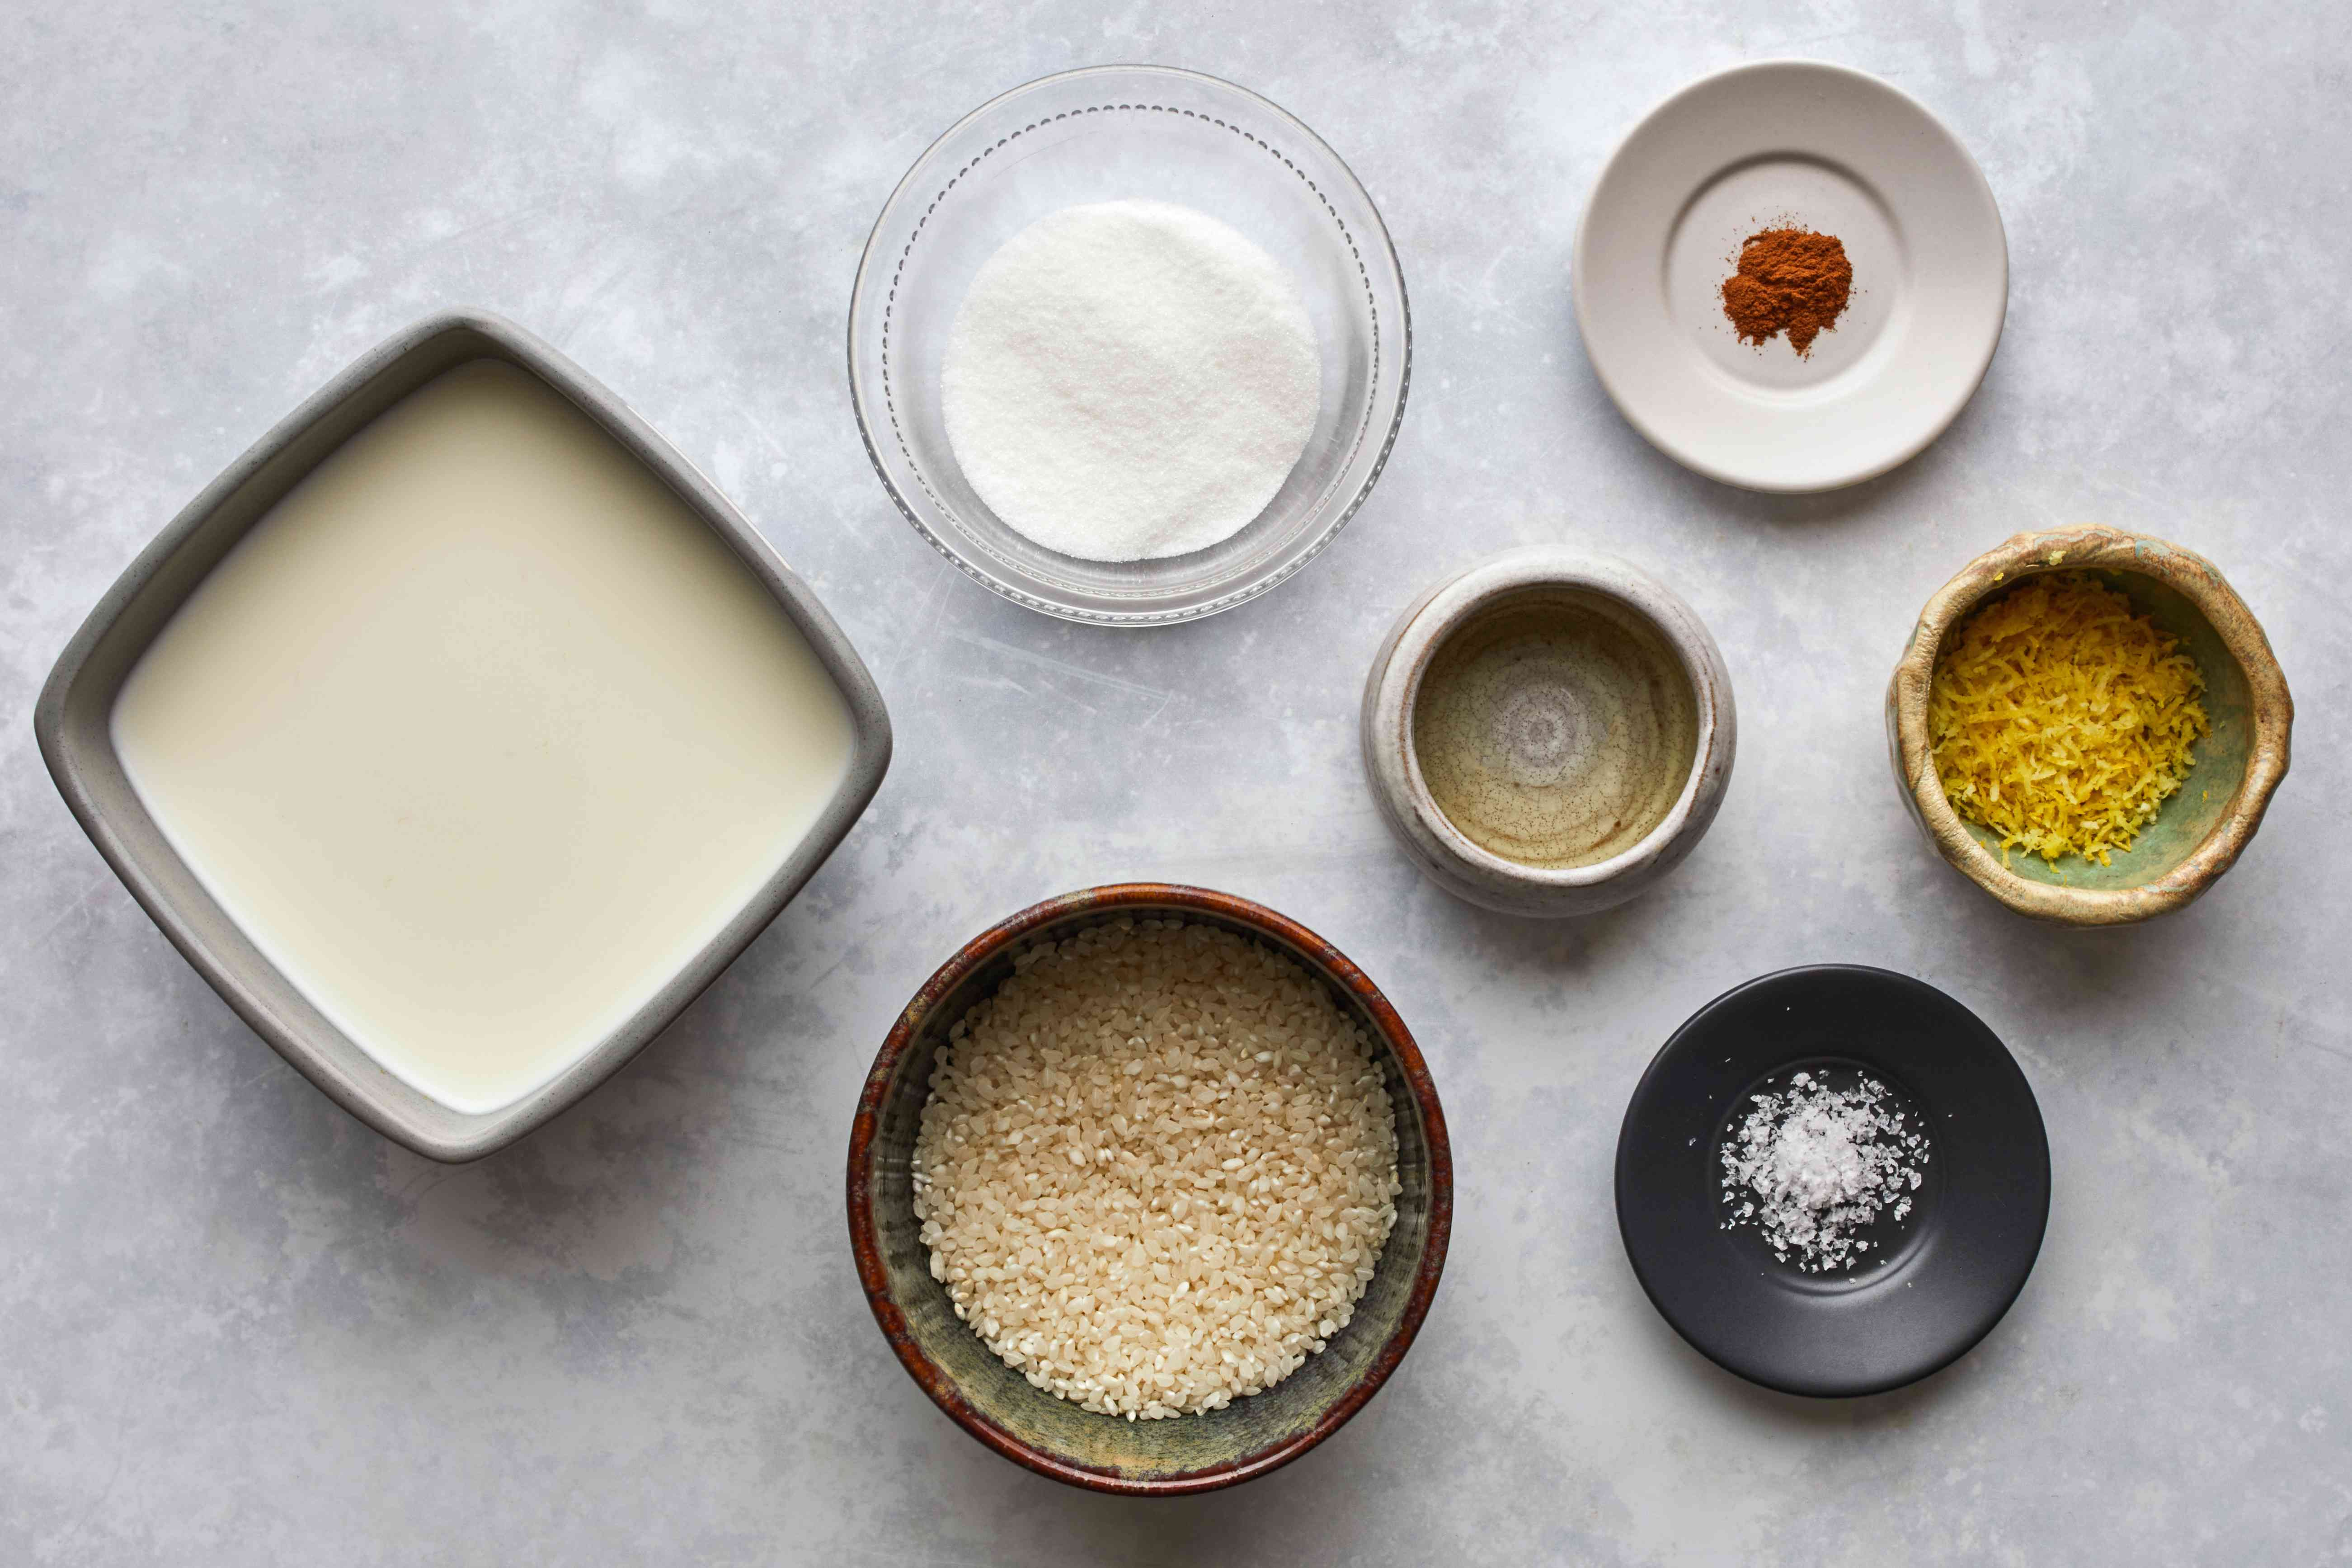 Ingredients for vanilla rice pudding